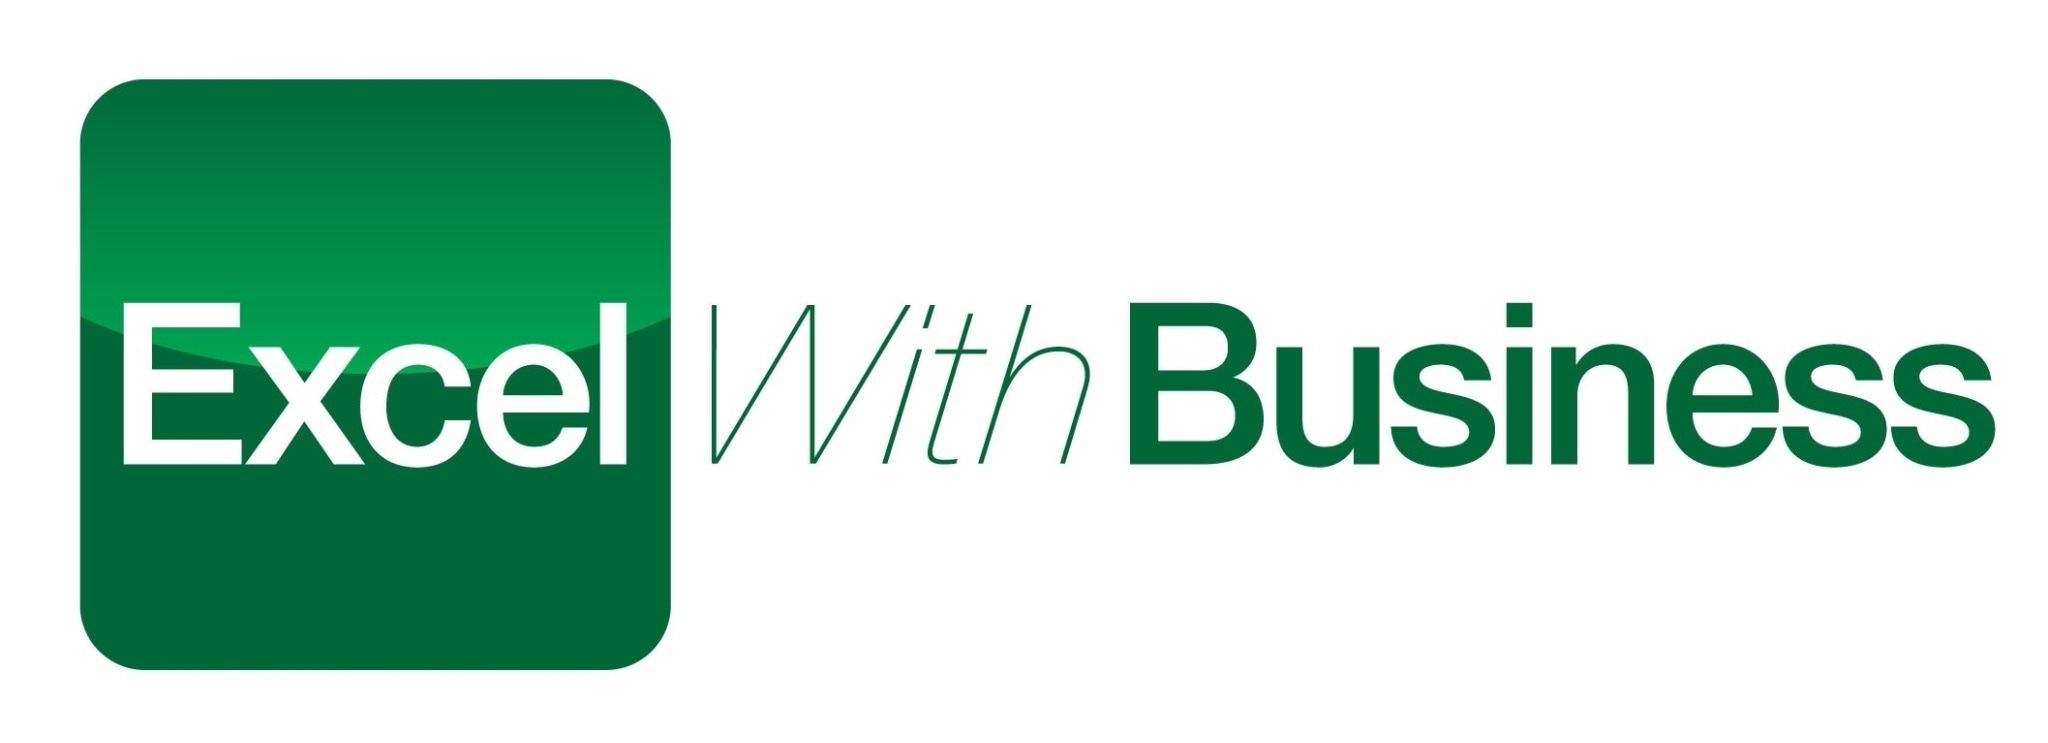 Excel with Business promo codes